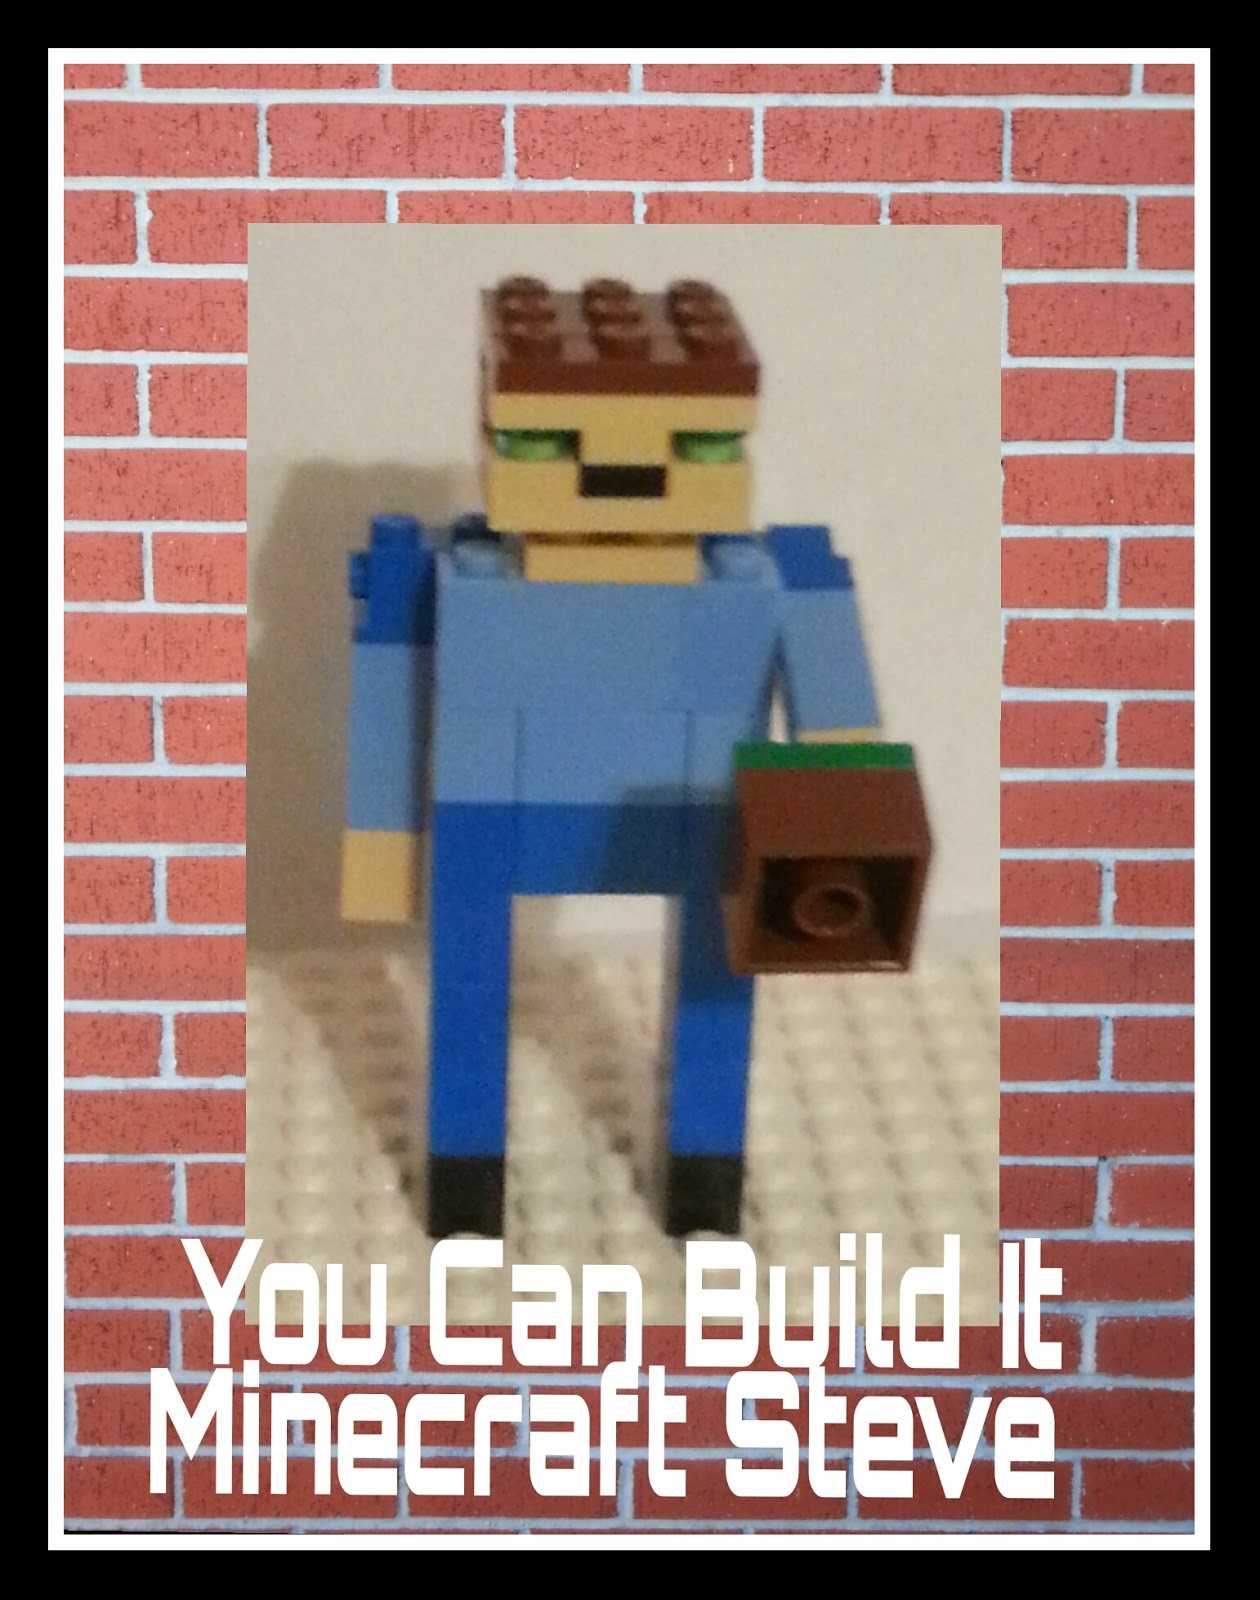 Video Instructions to Build Minecraft Steve out of LEGO Bricks